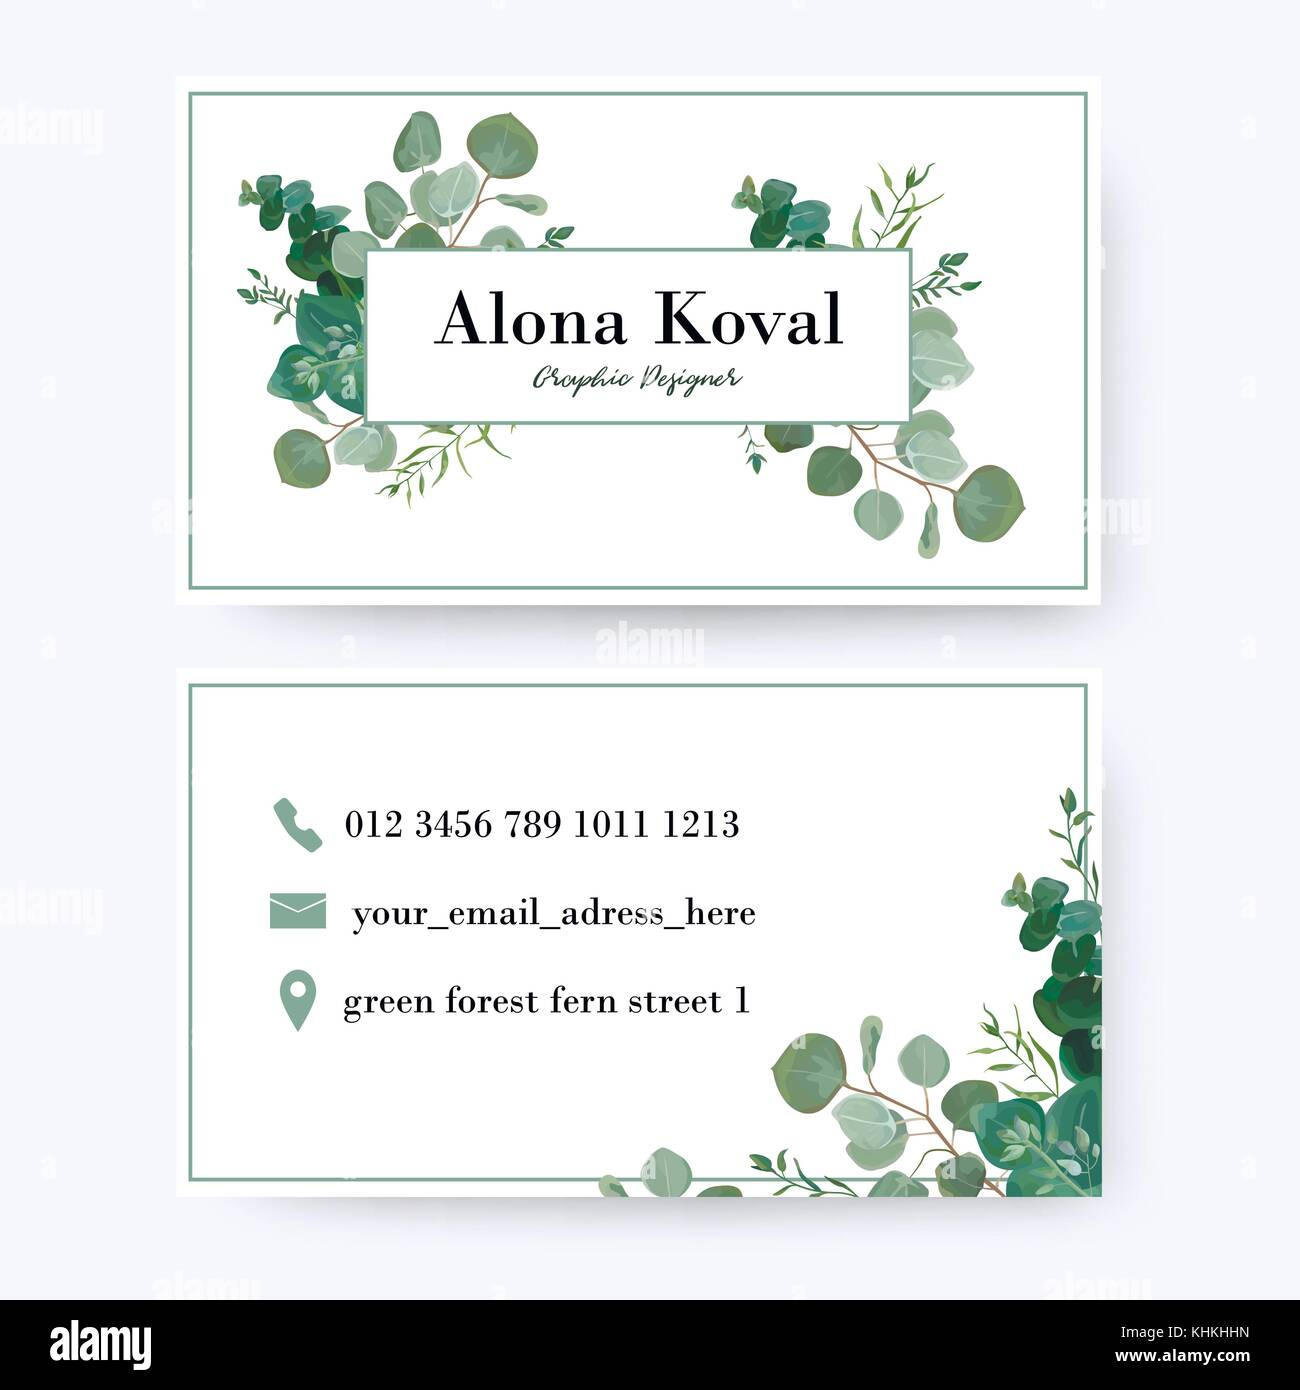 Floral business card design. Vintage rustic eucalyptus silver green ...